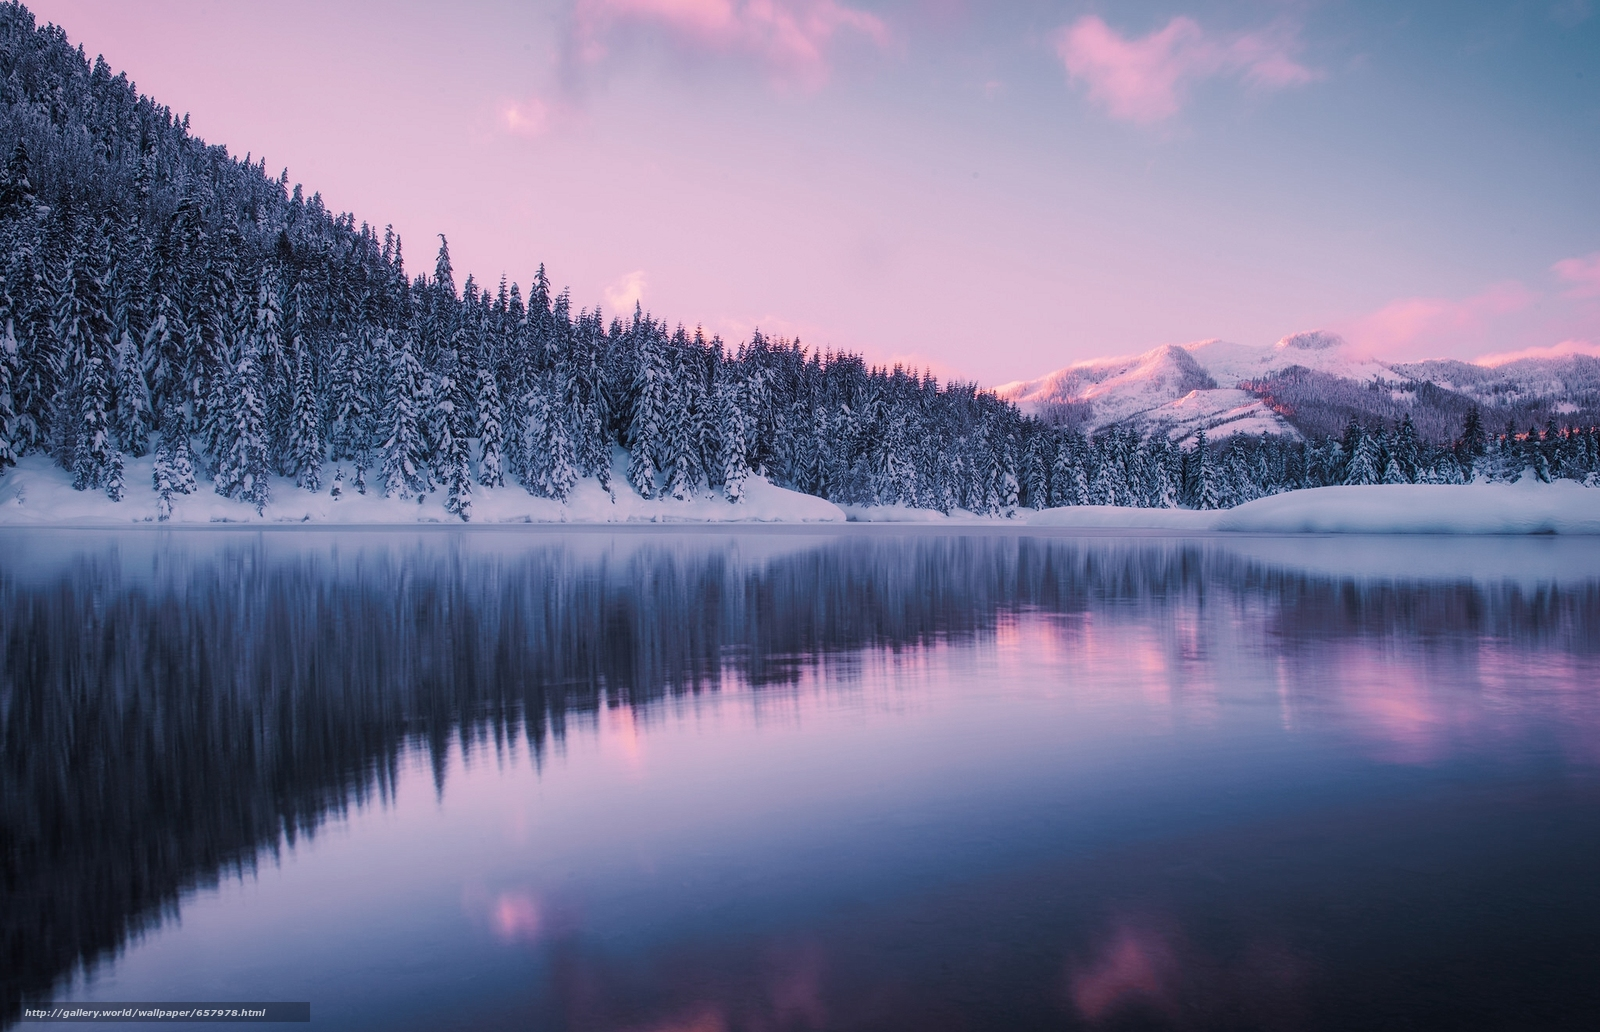 Gold Creek Pond, Hyak, Washington, Giak, Washington, pond, lake, winter, forest, Mountains